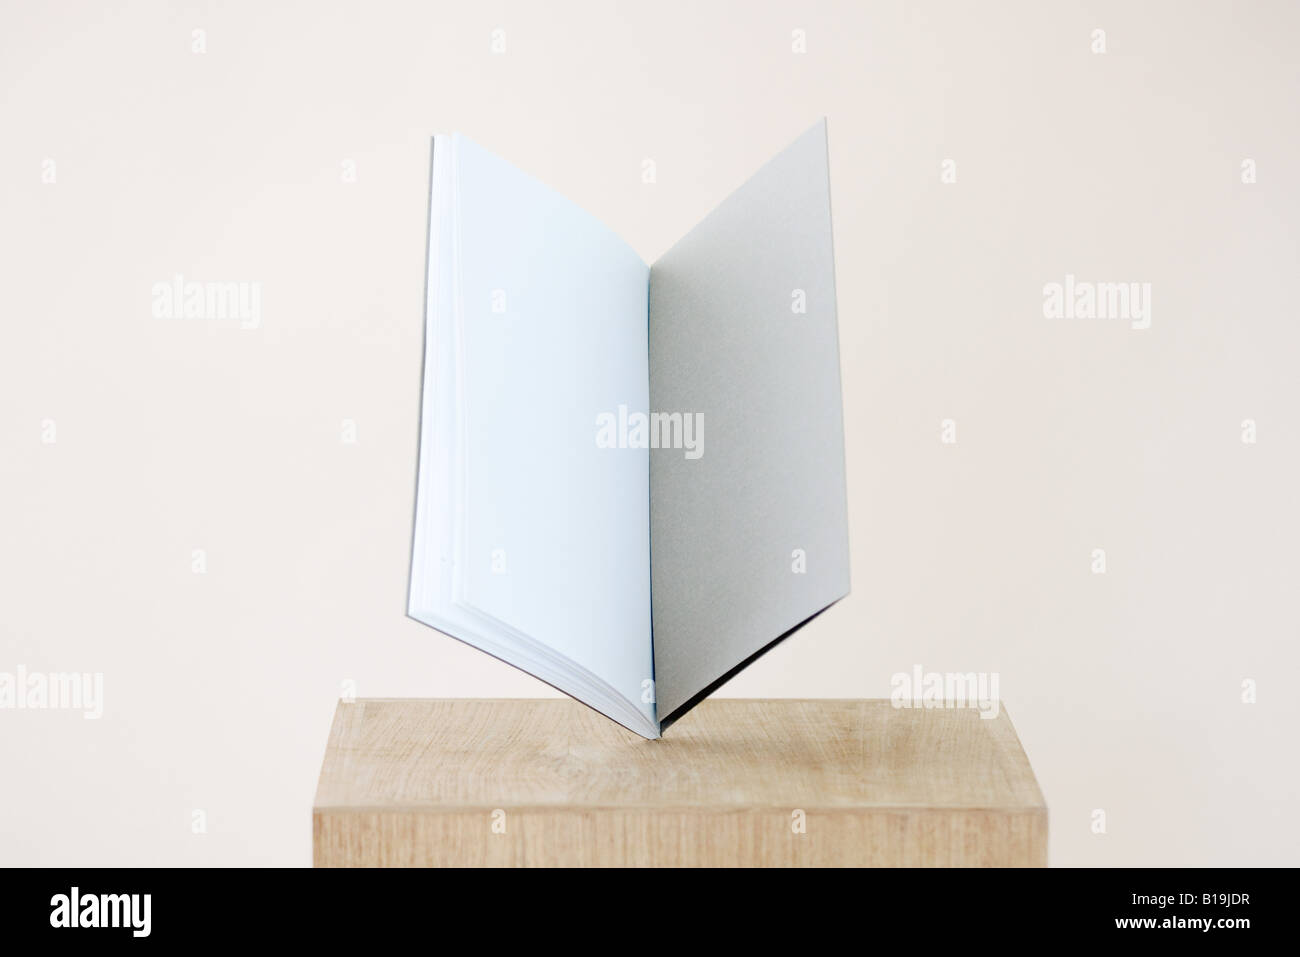 Open book with blank pages balancing on pedestal - Stock Image